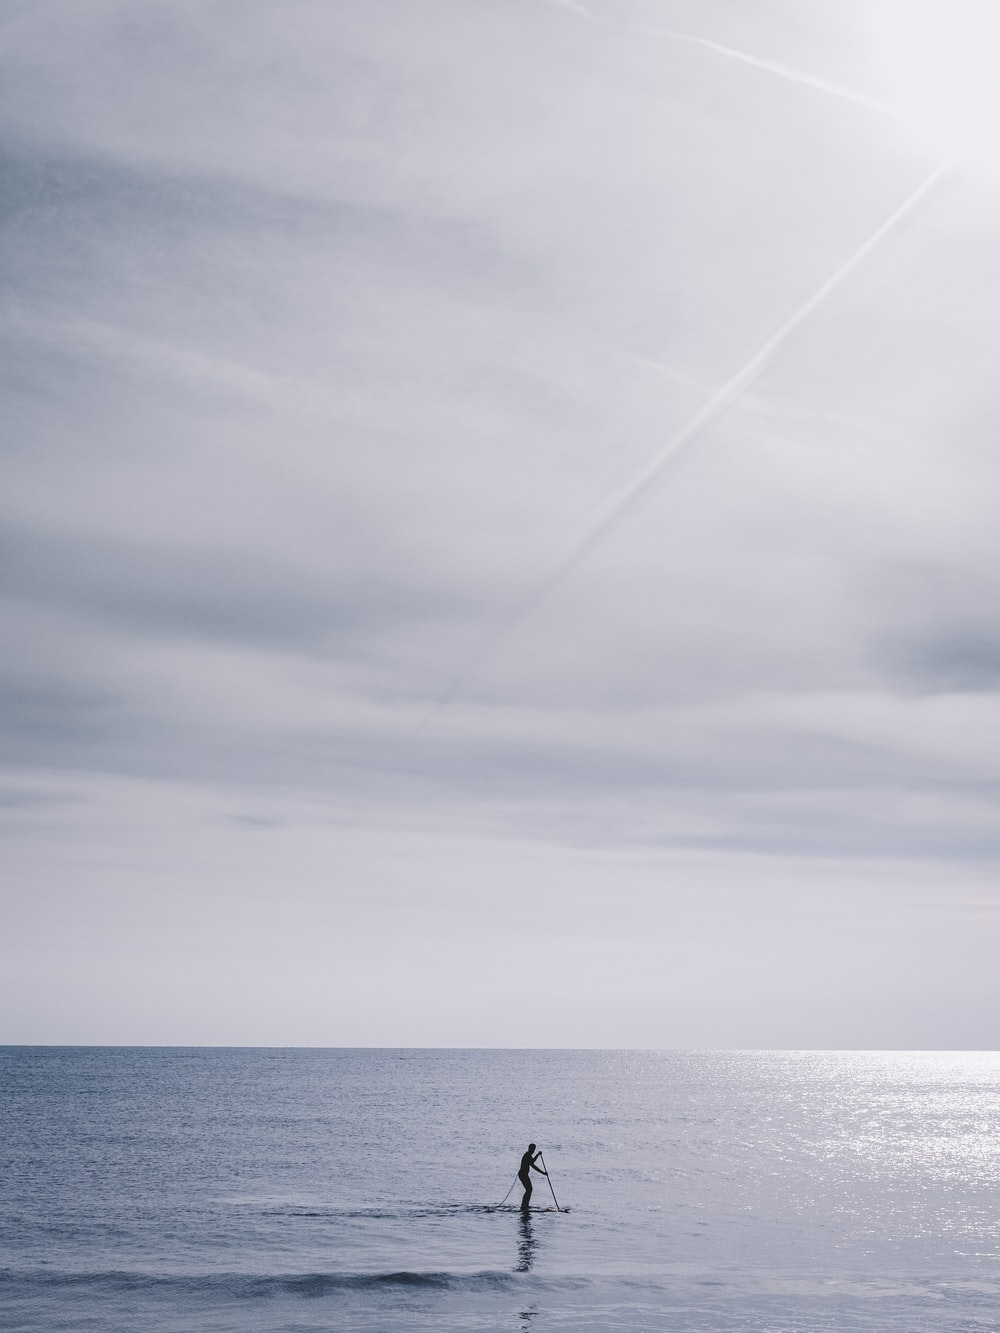 person in boat on sea under cloudy sky during daytime